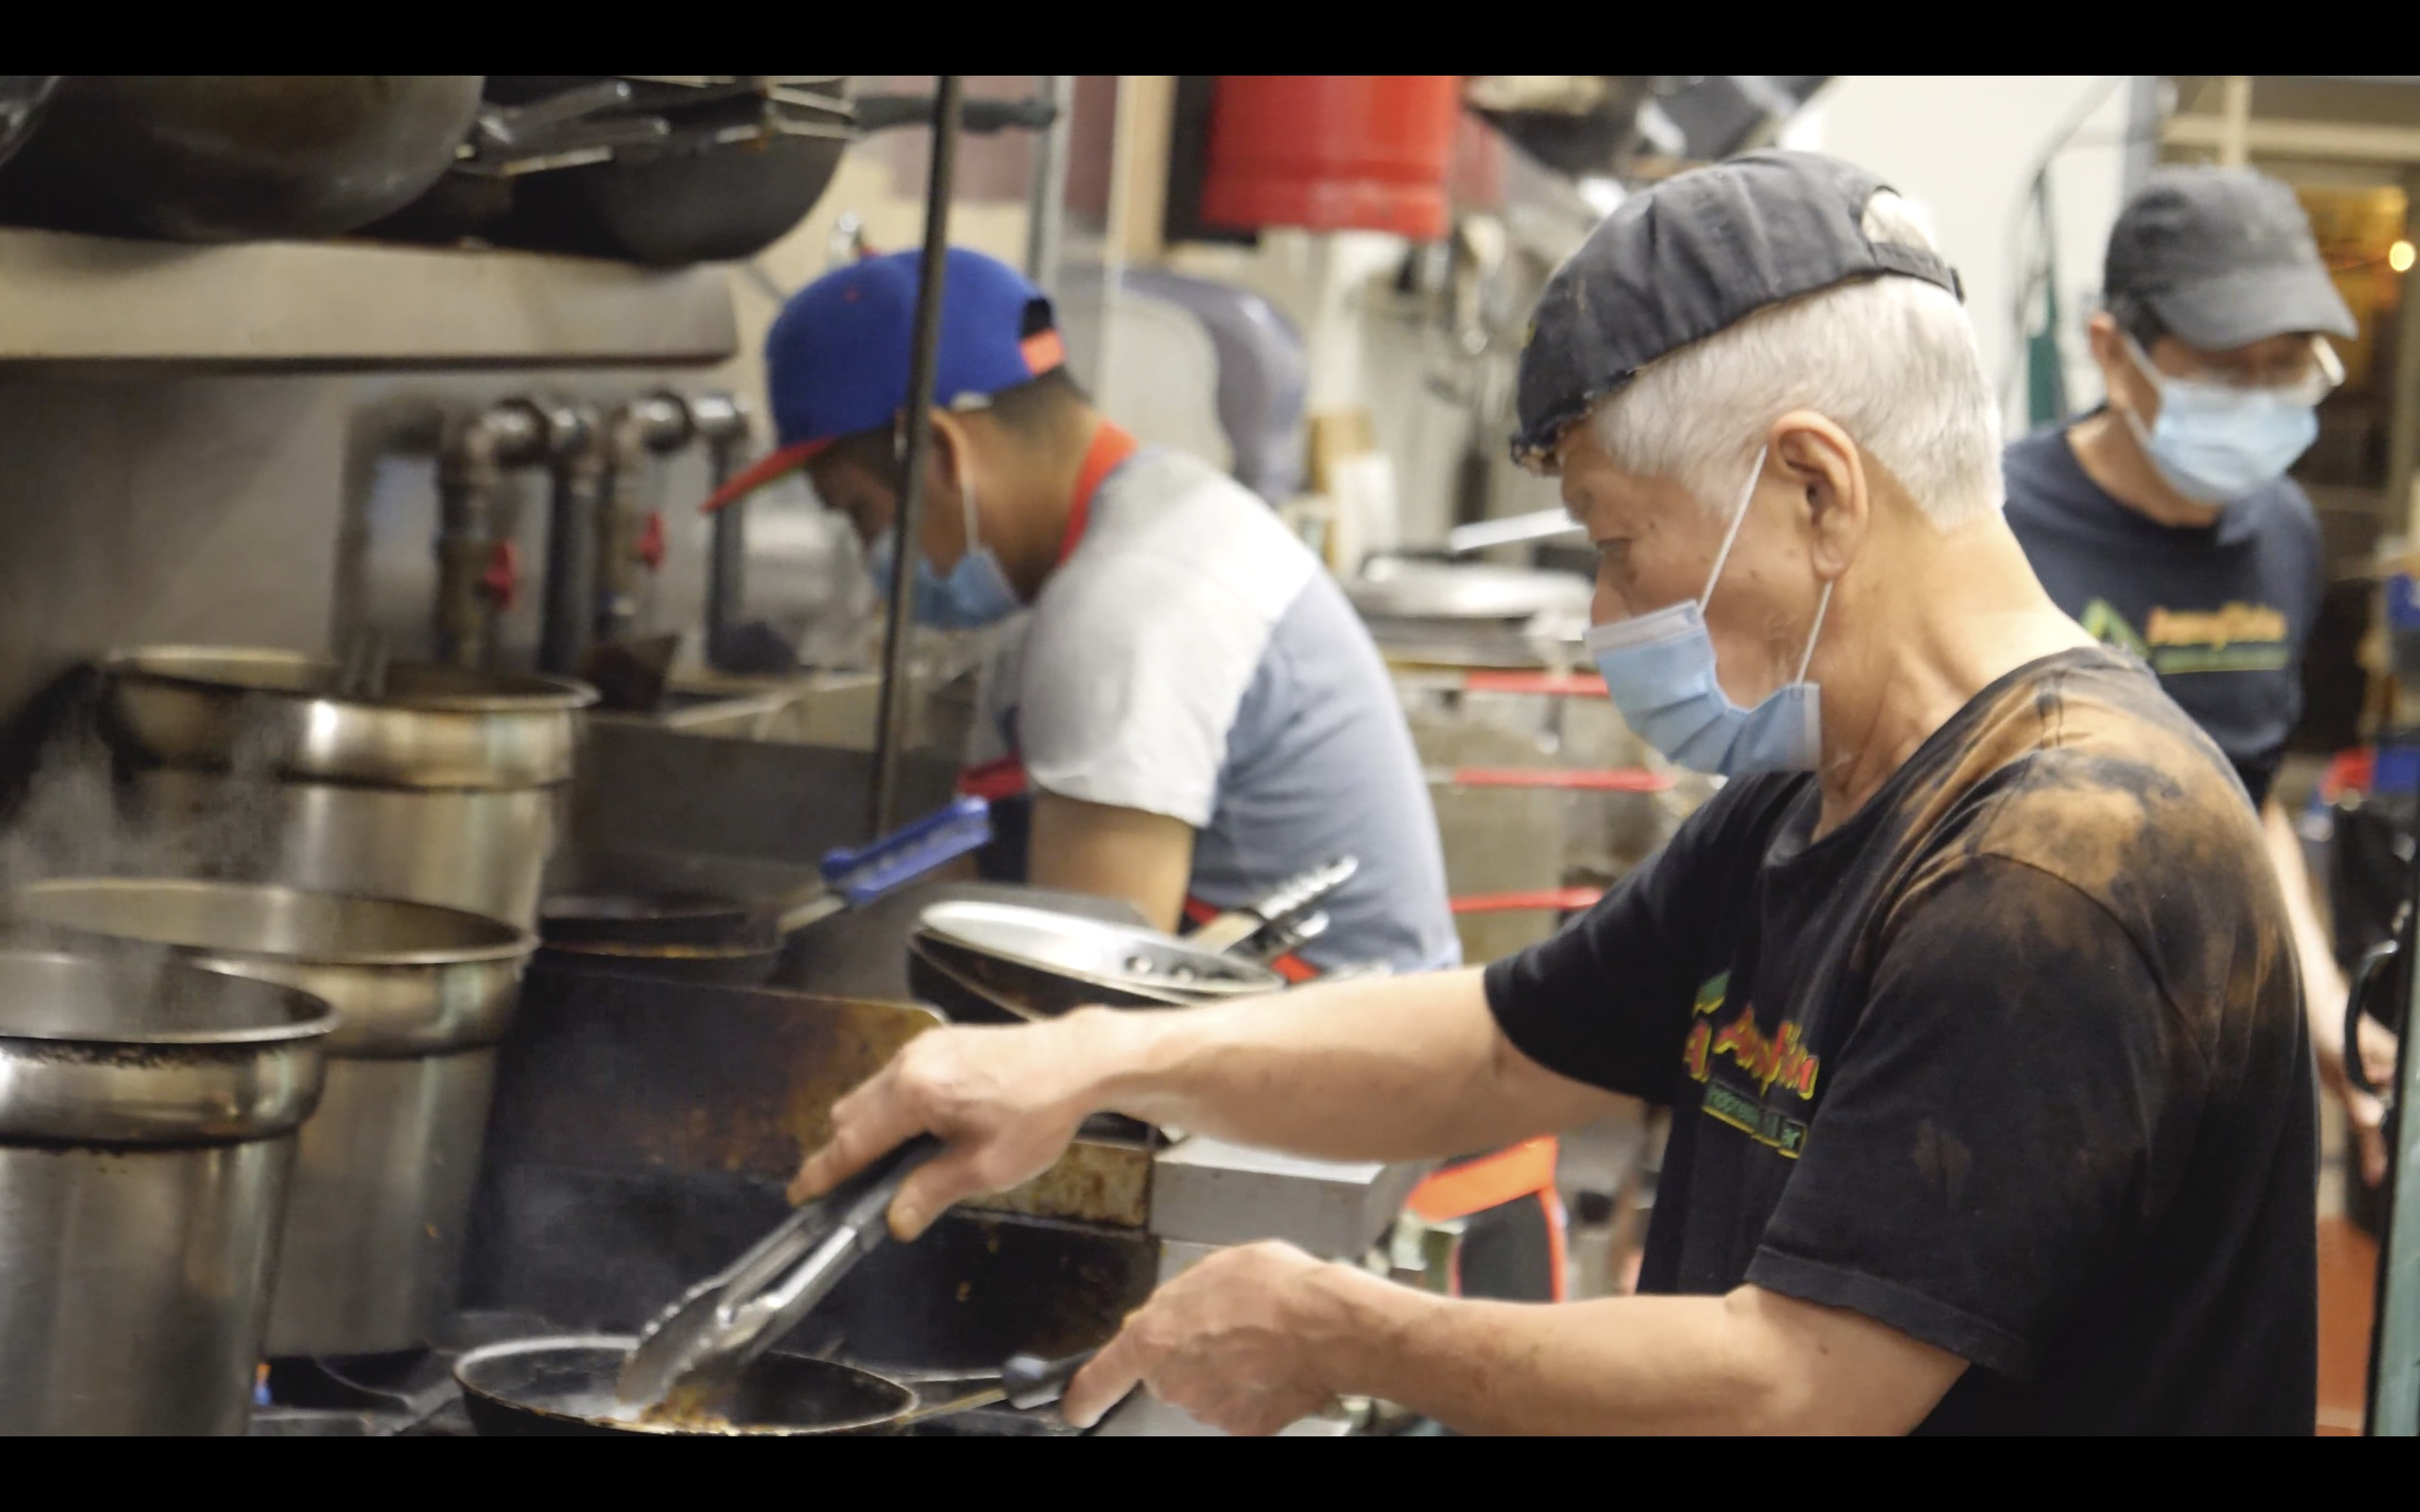 Man cooks in restaurant kitchen with mask on